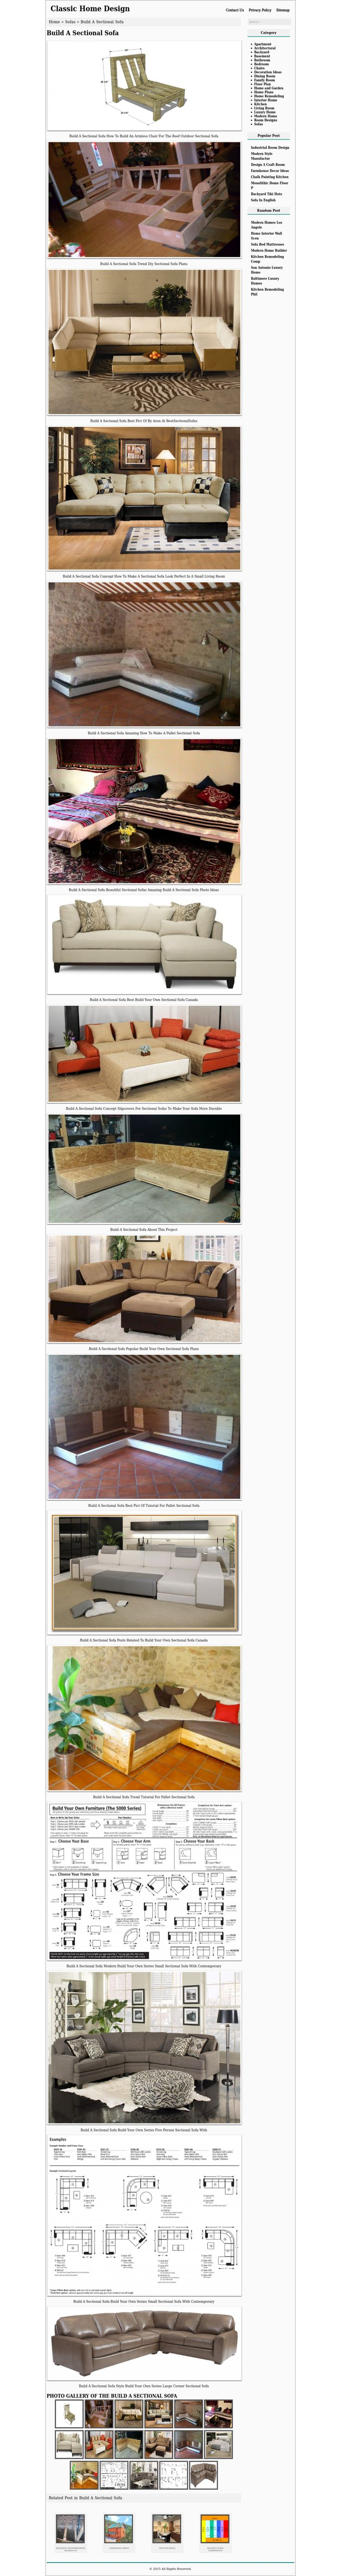 26 best Fabrication Sofa images on Pinterest